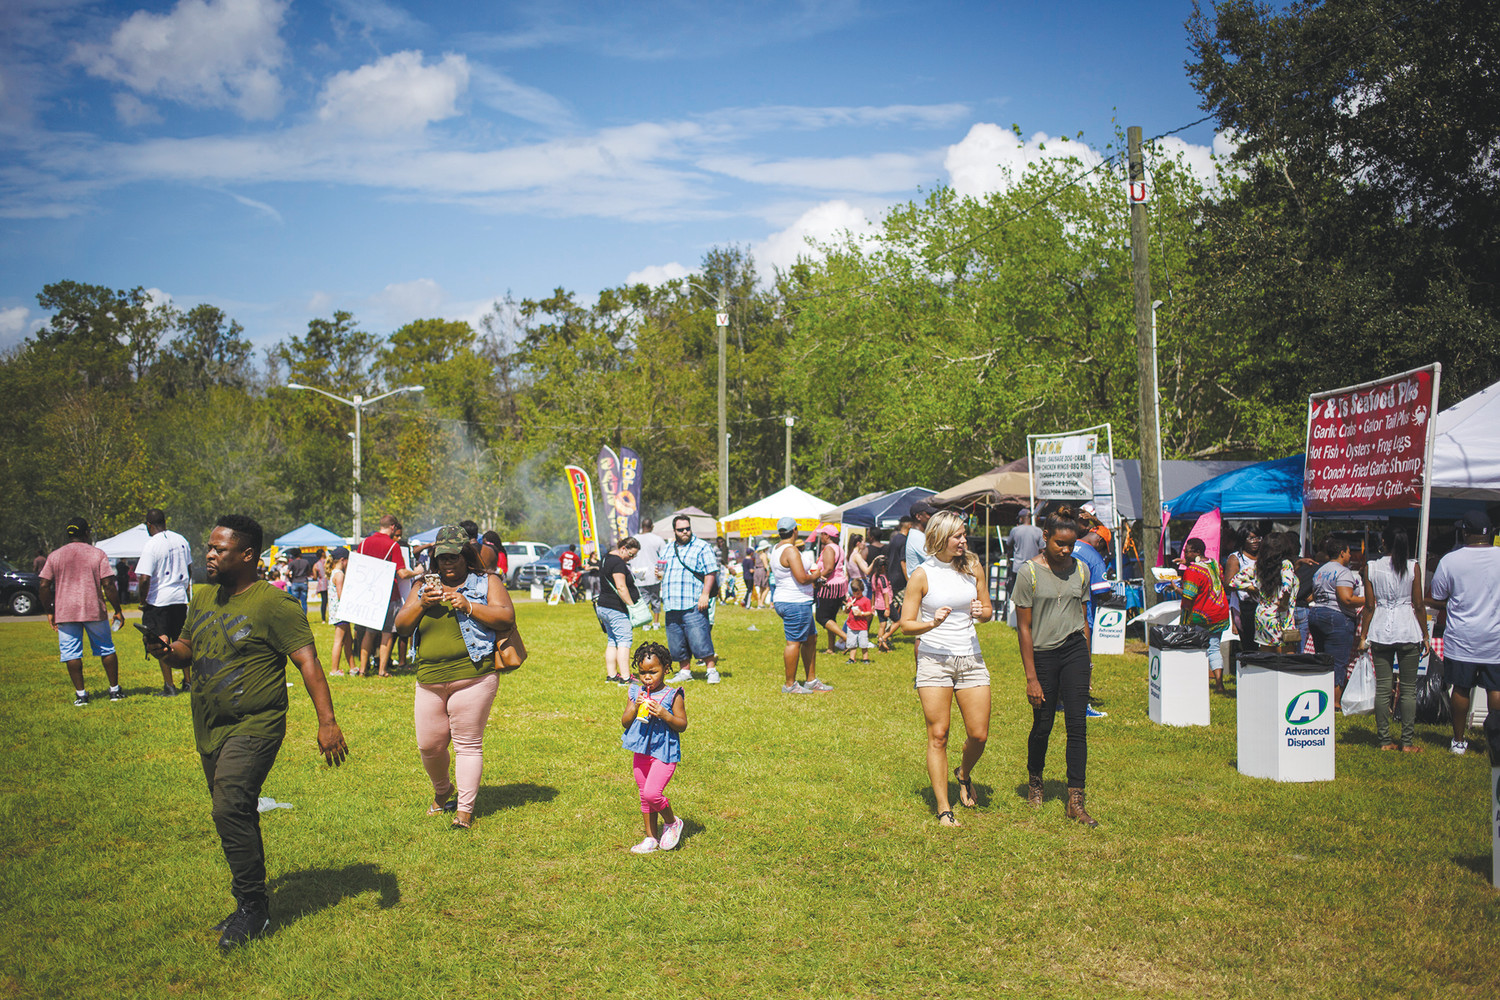 The crowd began to grow around lunchtime in Green Cove Springs as Clay County residents decided to make their way to the Soul Food Festival in search of barbecued meats or fresh boiled crab.